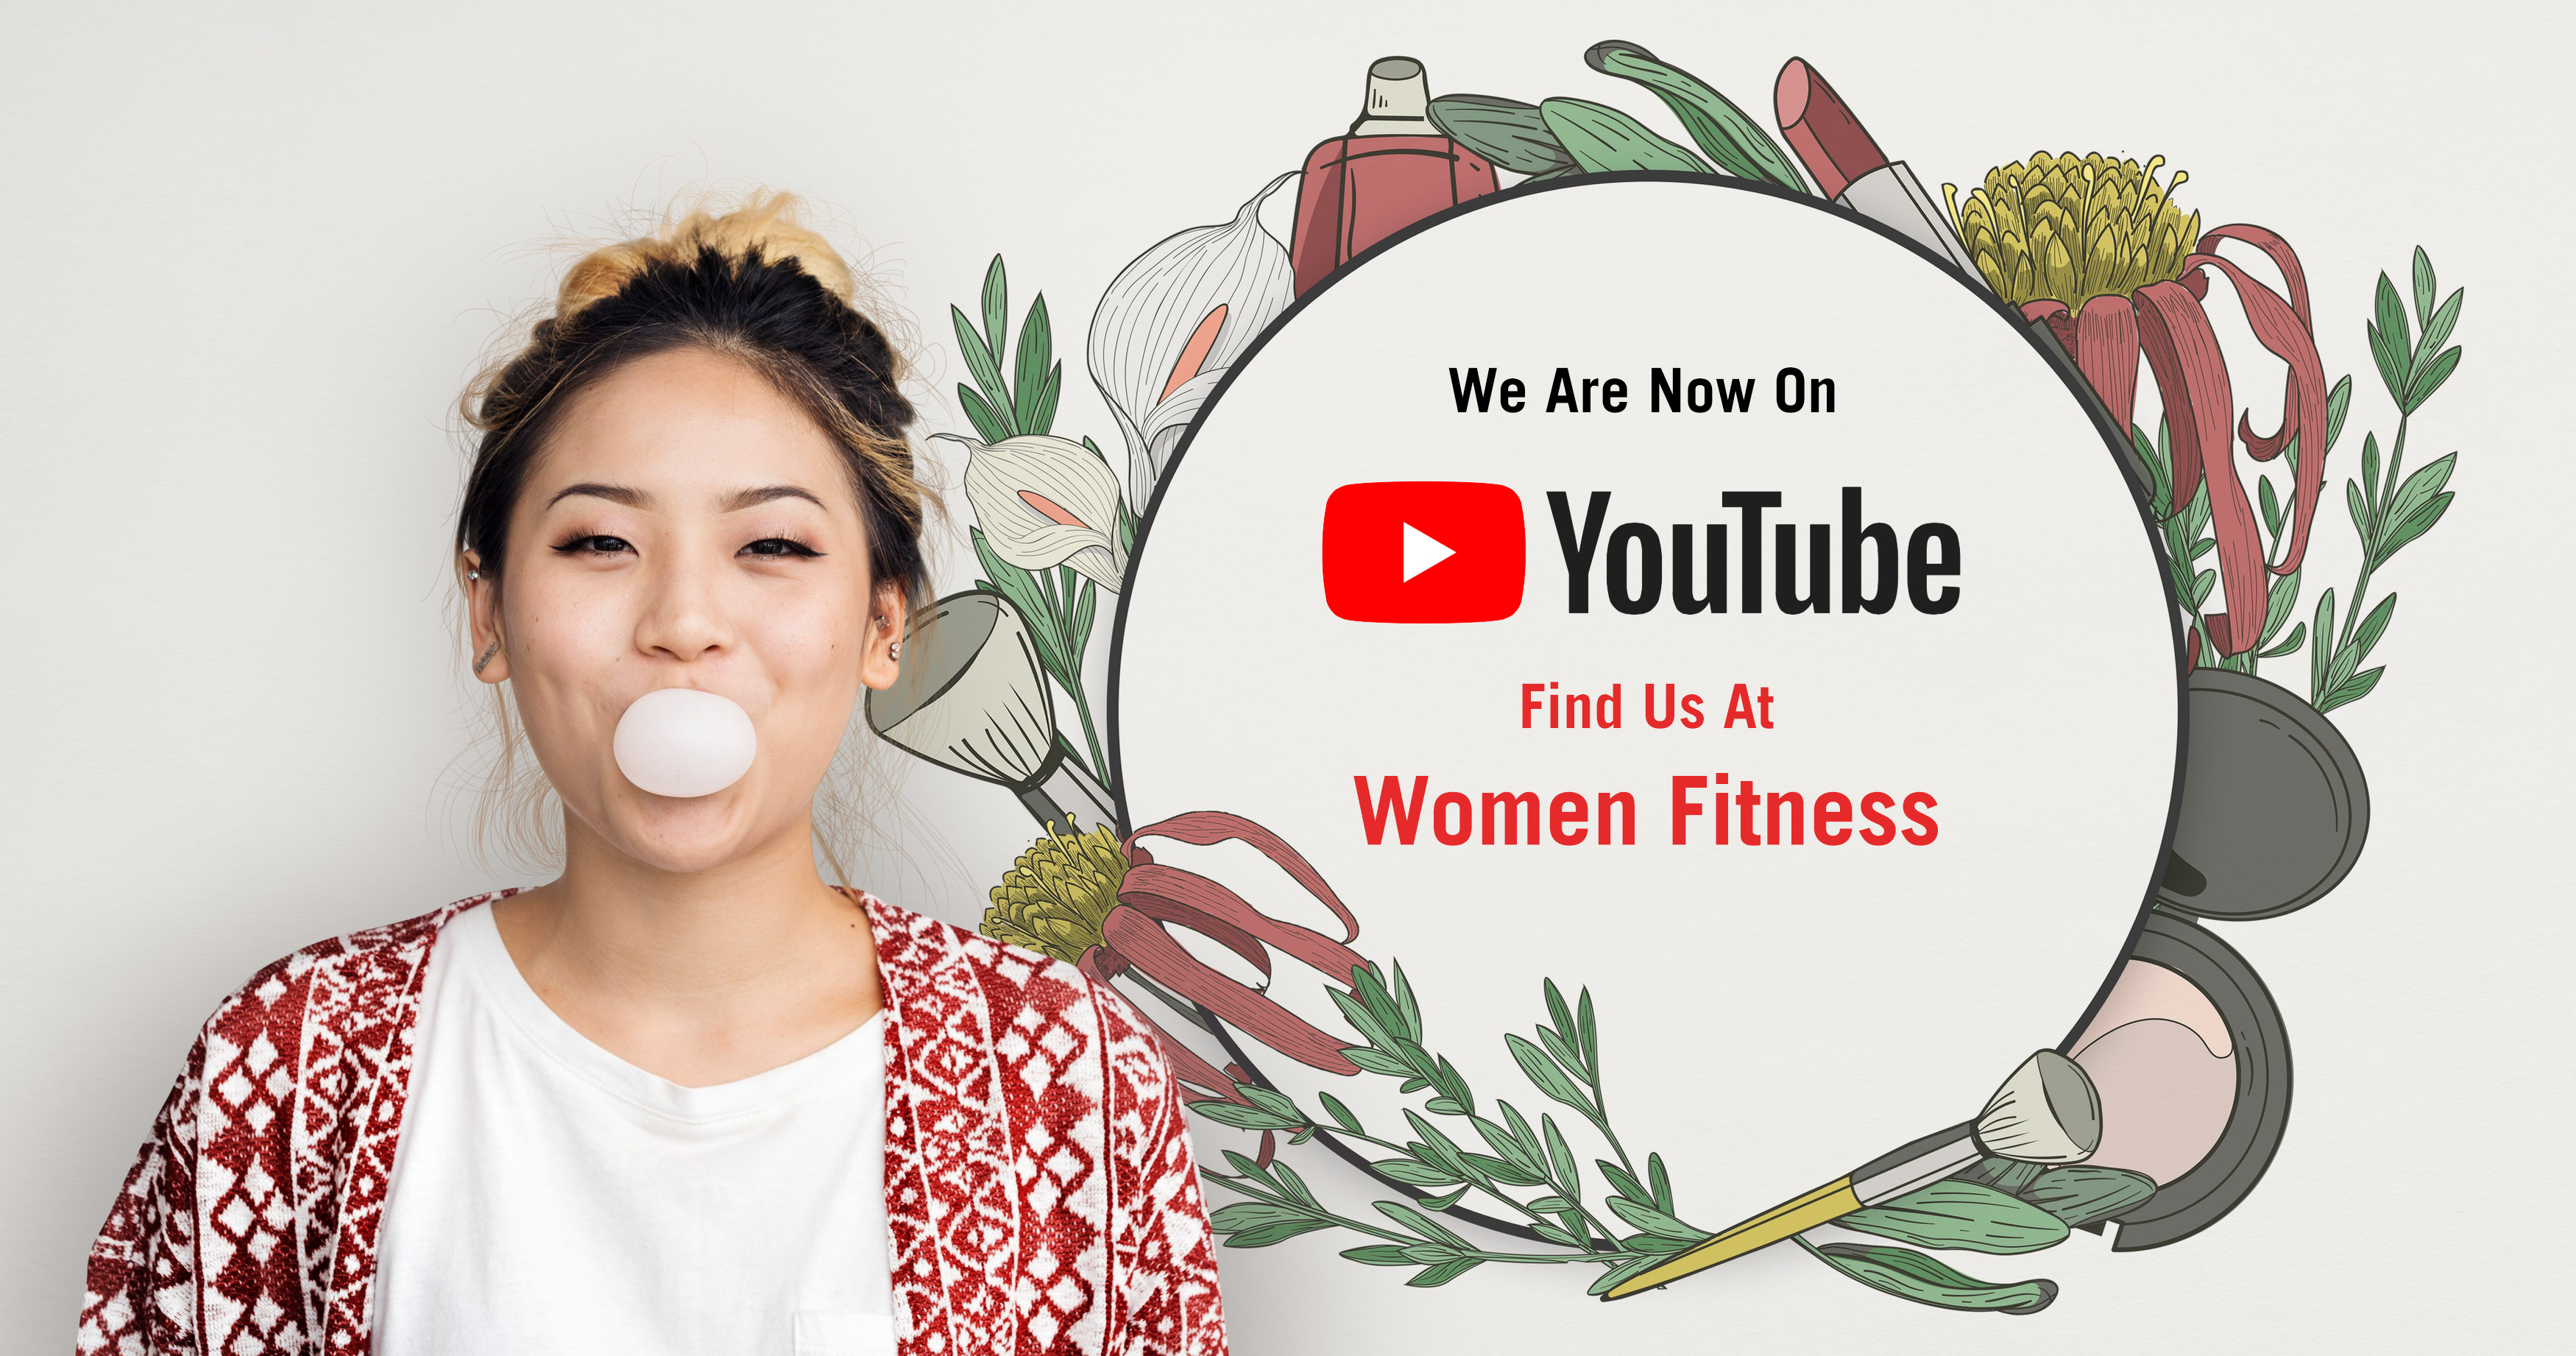 Women Fitness on Youtube